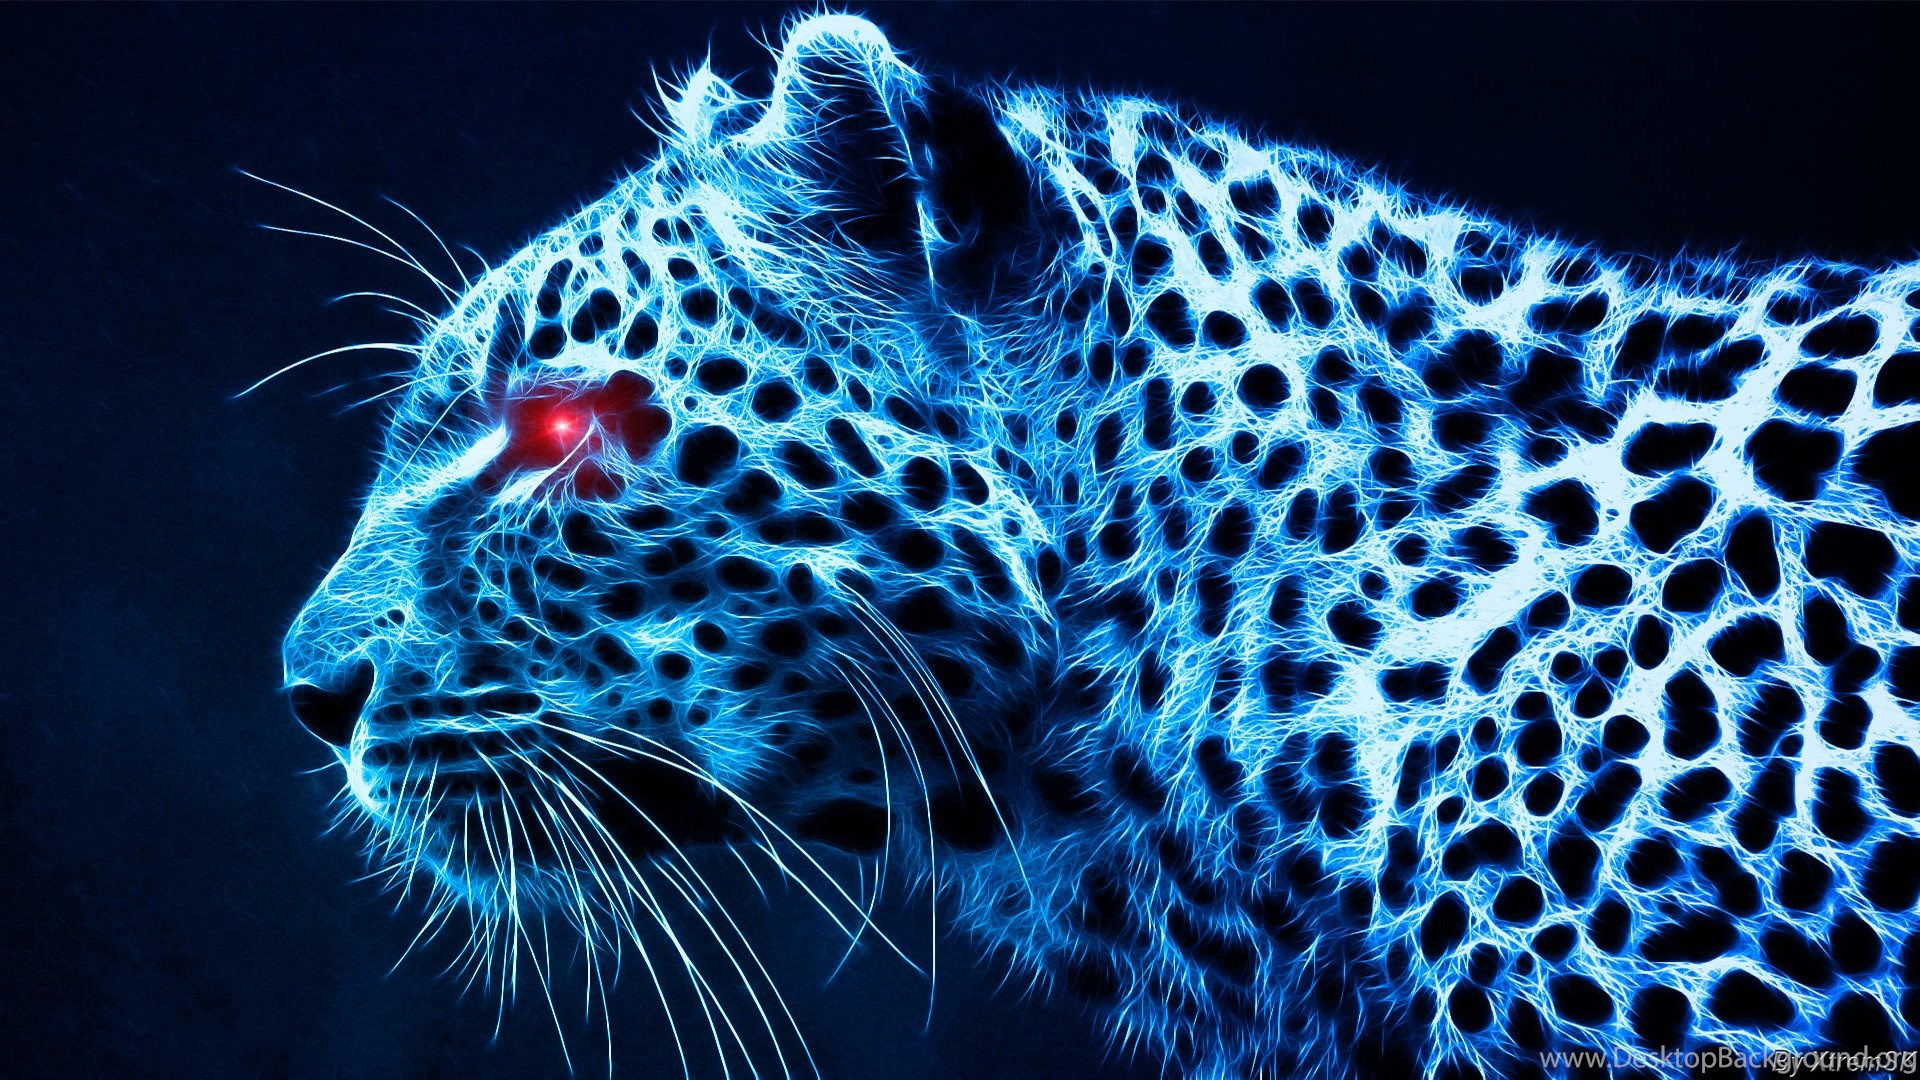 Glowing Cool Tiger Backgrounds Image Gallery Photonesta Desktop Background